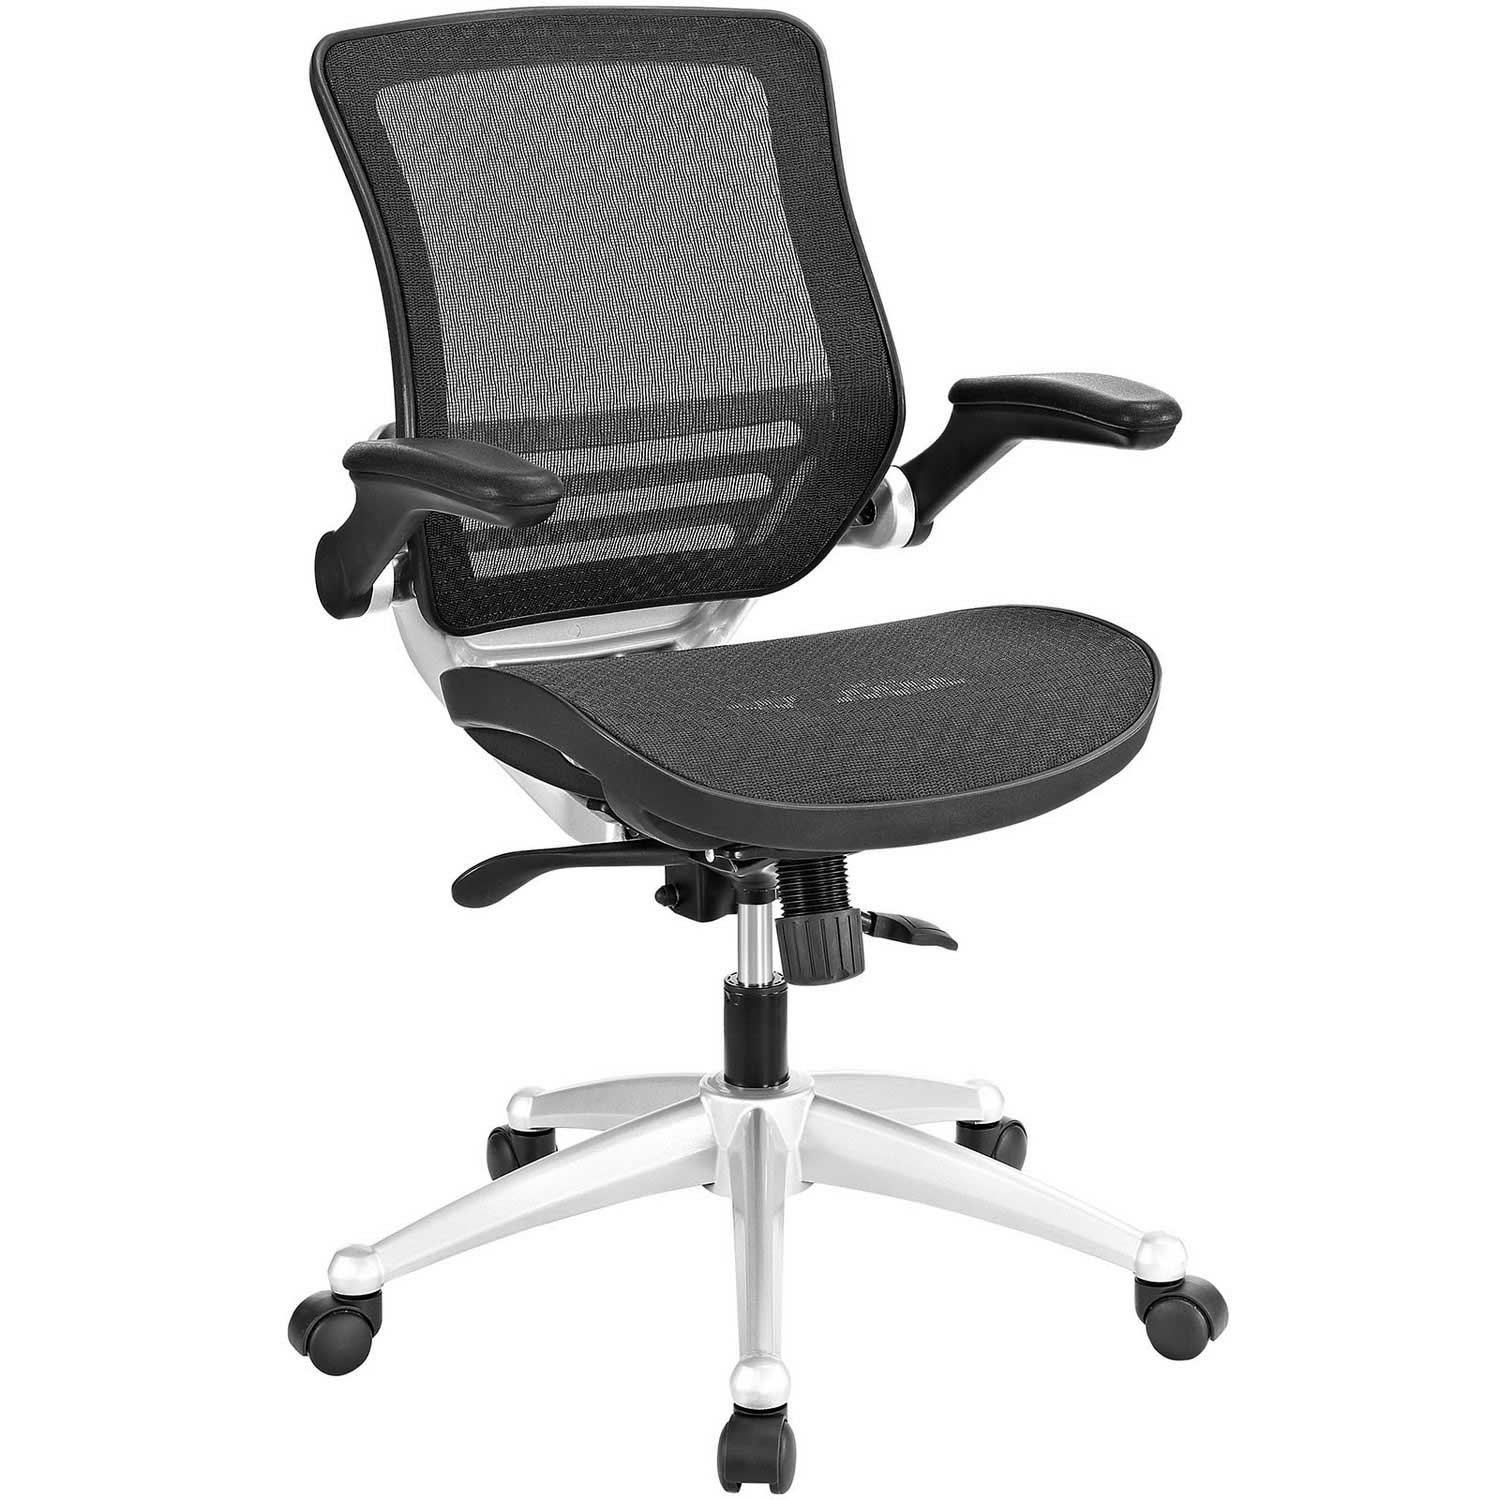 Modway Edge All Mesh Office Chair - Black